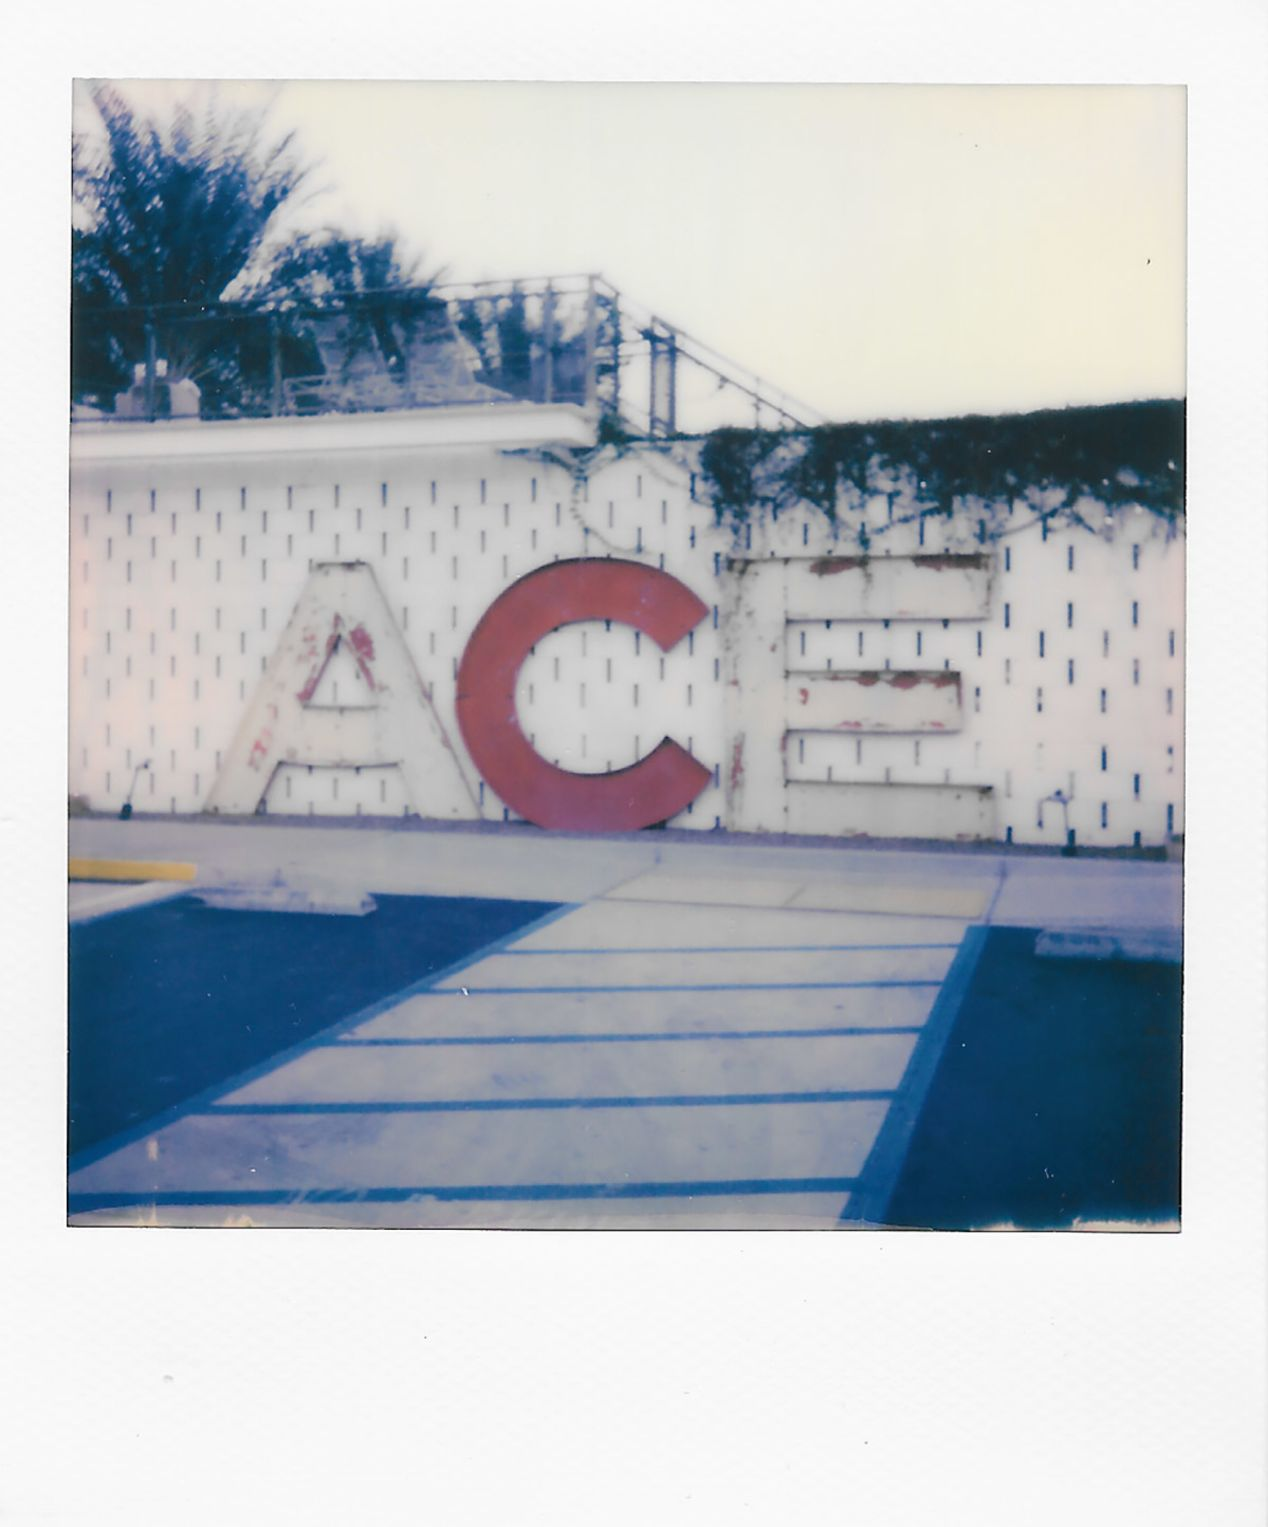 Ace Hotel in Palm Springs, California. Taken with a Polaroid 600 Camera and Polaroid Originals 600 Film